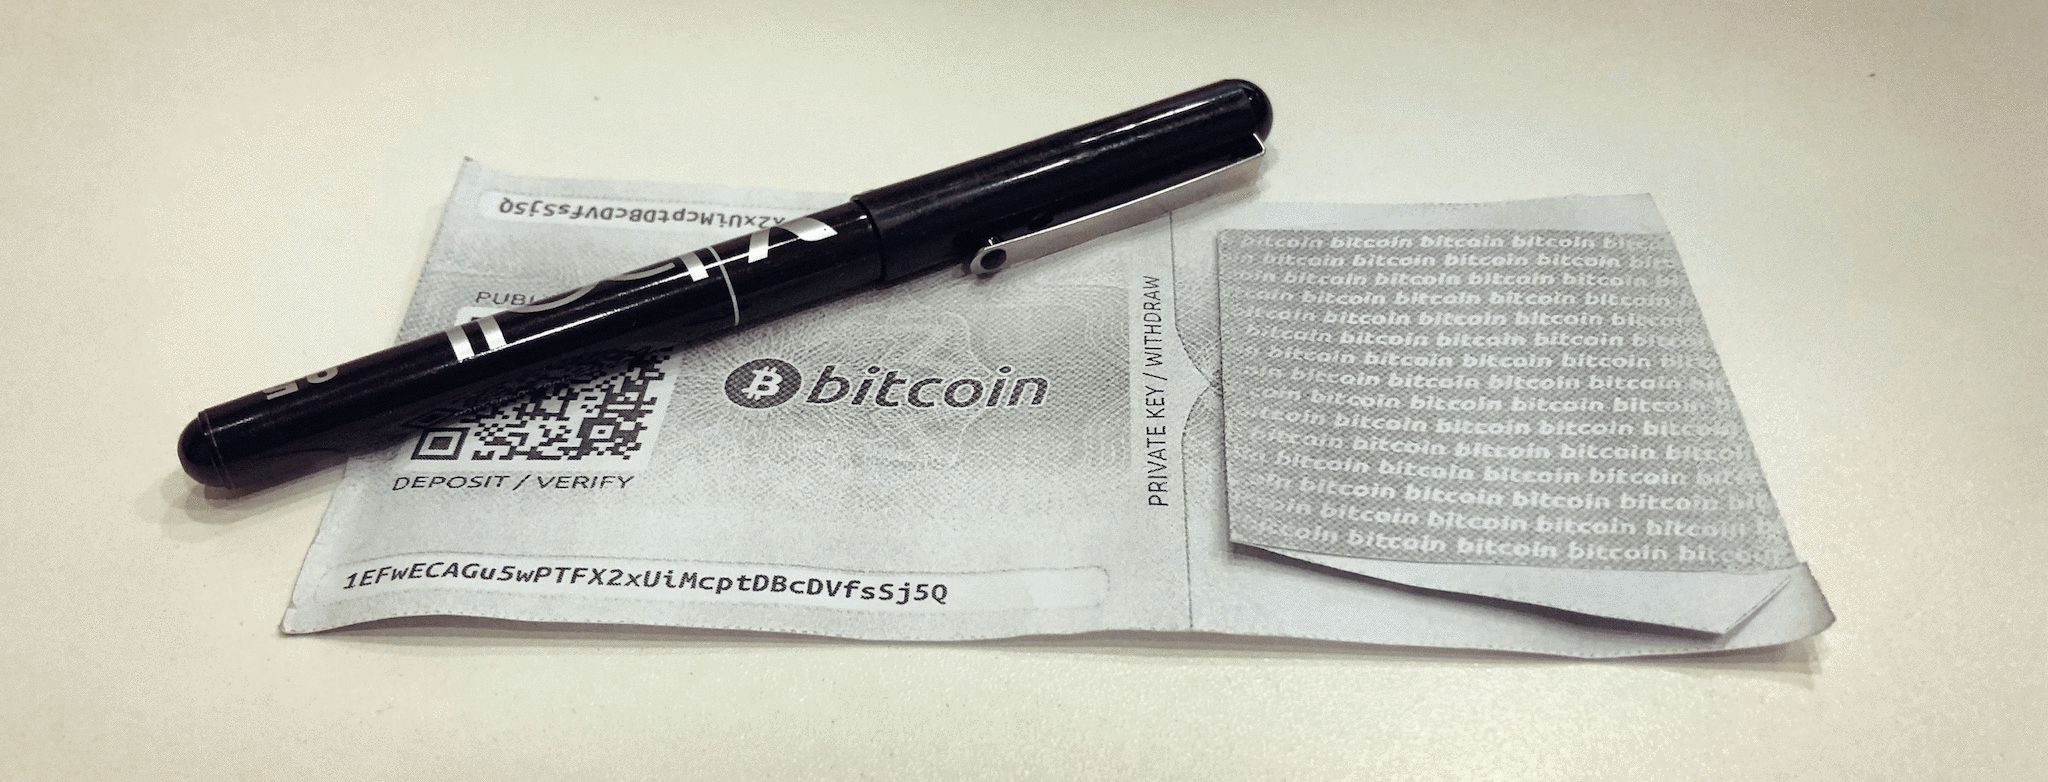 The best bitcoin wallet